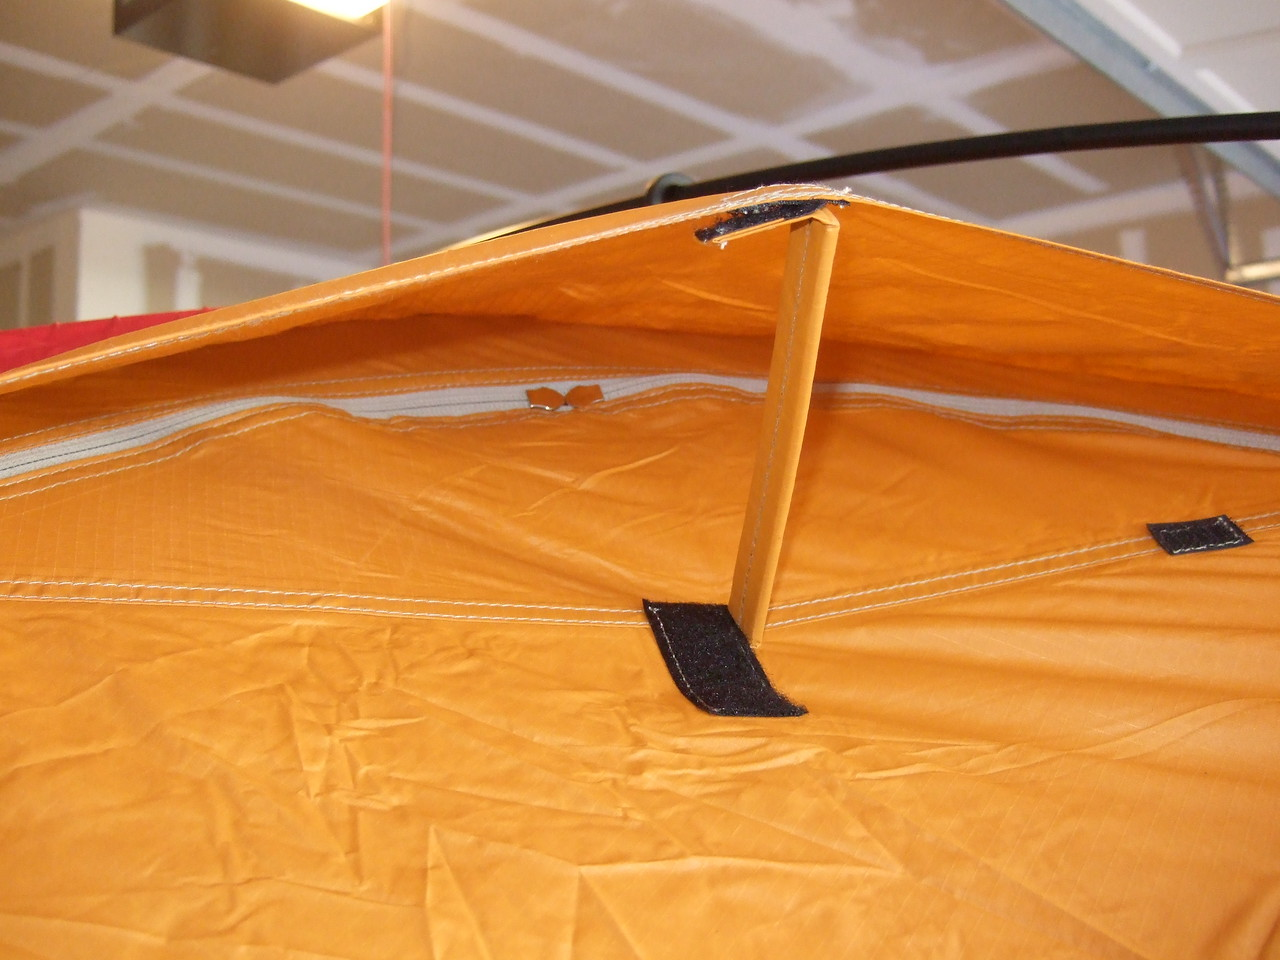 Underneath the flap is a small stiff piece that you raise and stick to the velcro as shown. Under that flap is another zippered flap which is closed in this photo, sealing the fly against dust.